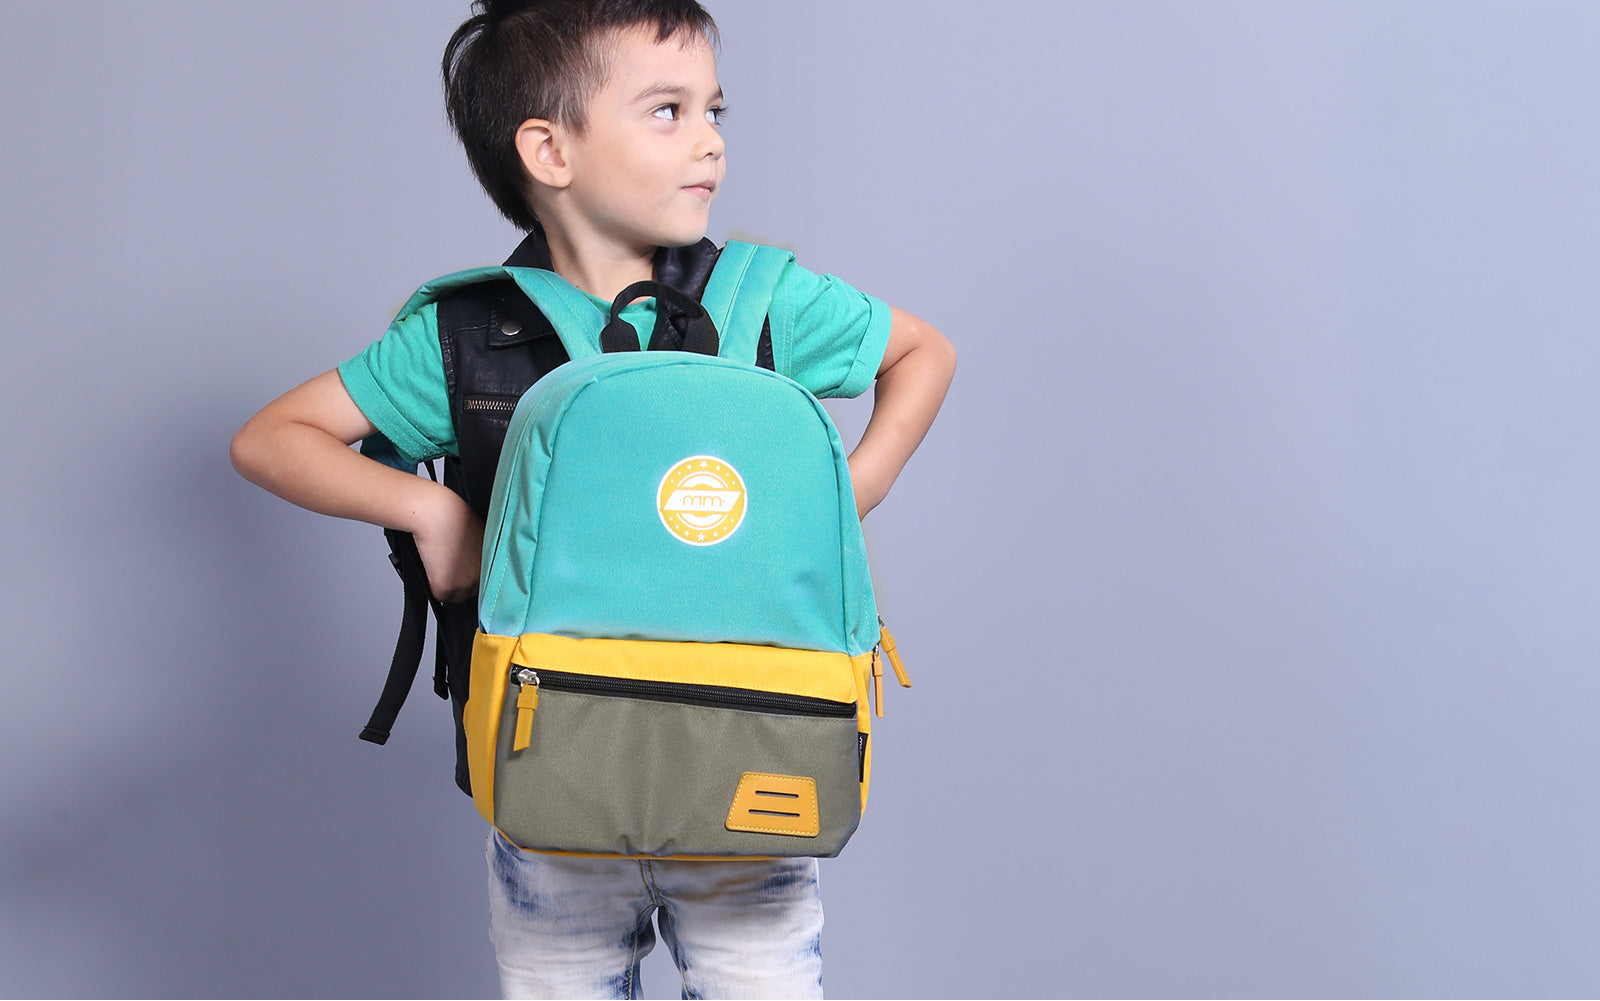 Kids Backpack for School Lunch Bag with Chest Clip Best for 3-6 Years Old